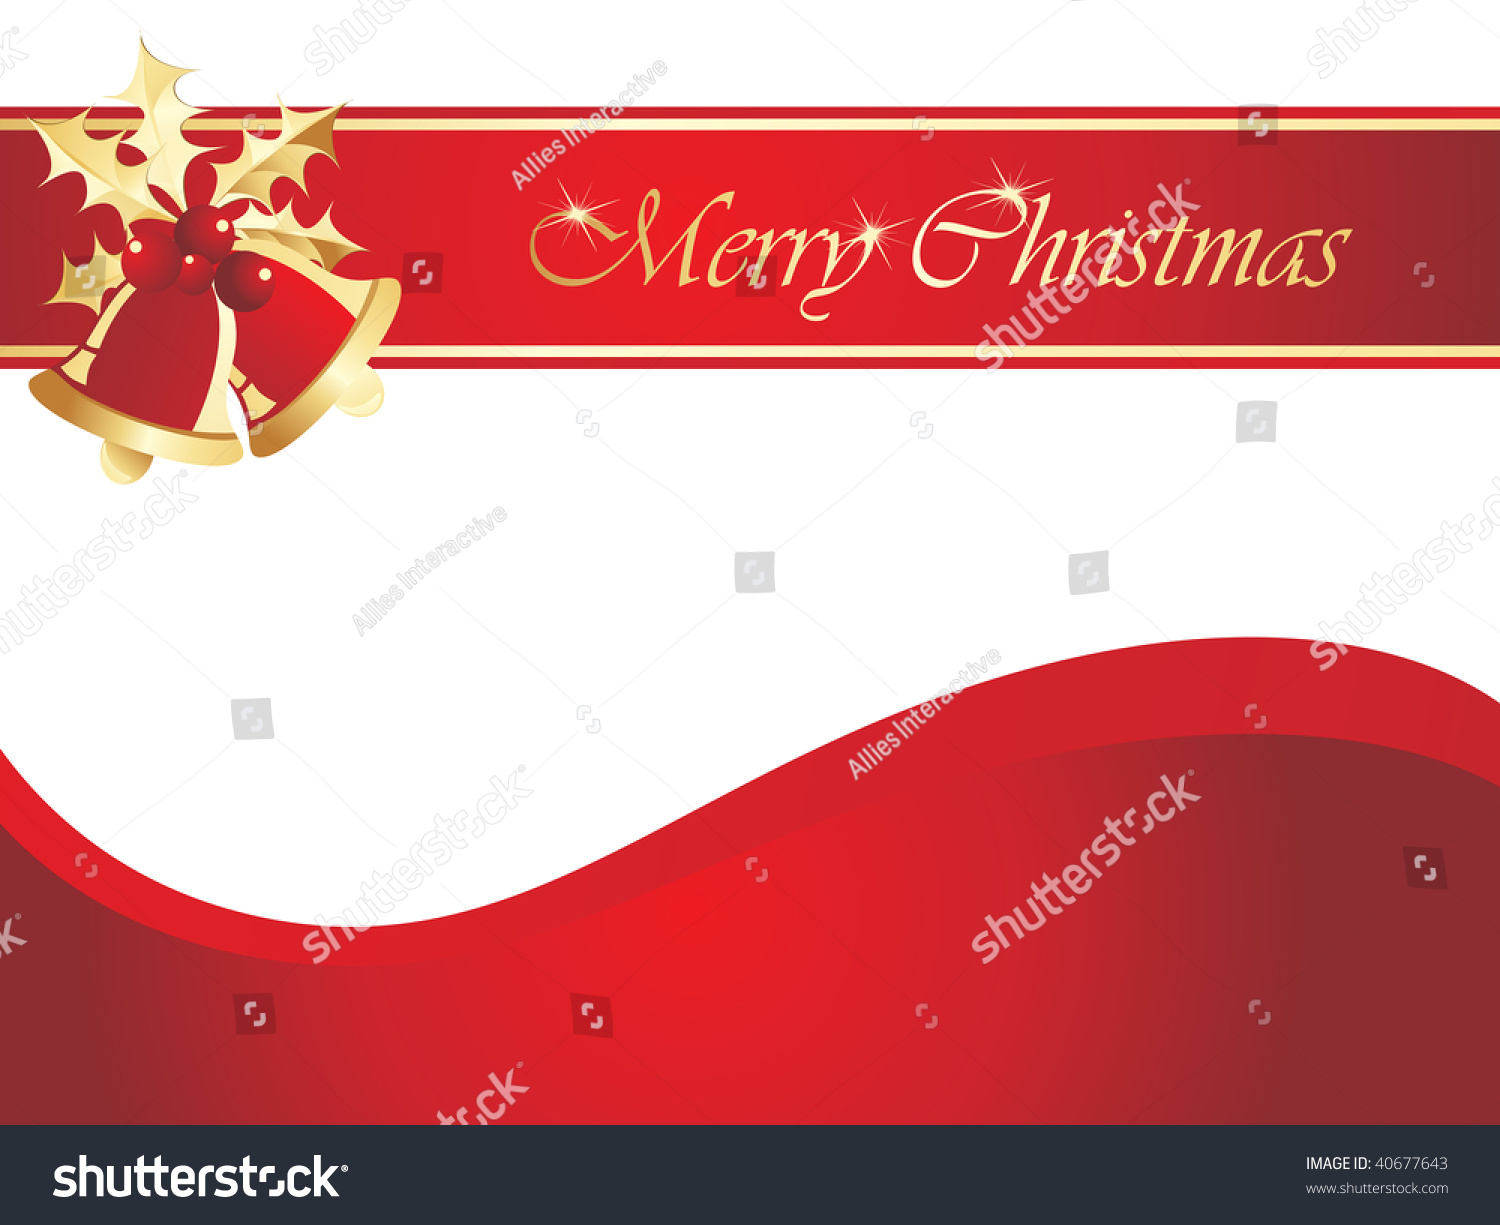 Christmas day card simple pattern vector stock vector 40677643 christmas day card with simple pattern vector illustration kristyandbryce Image collections